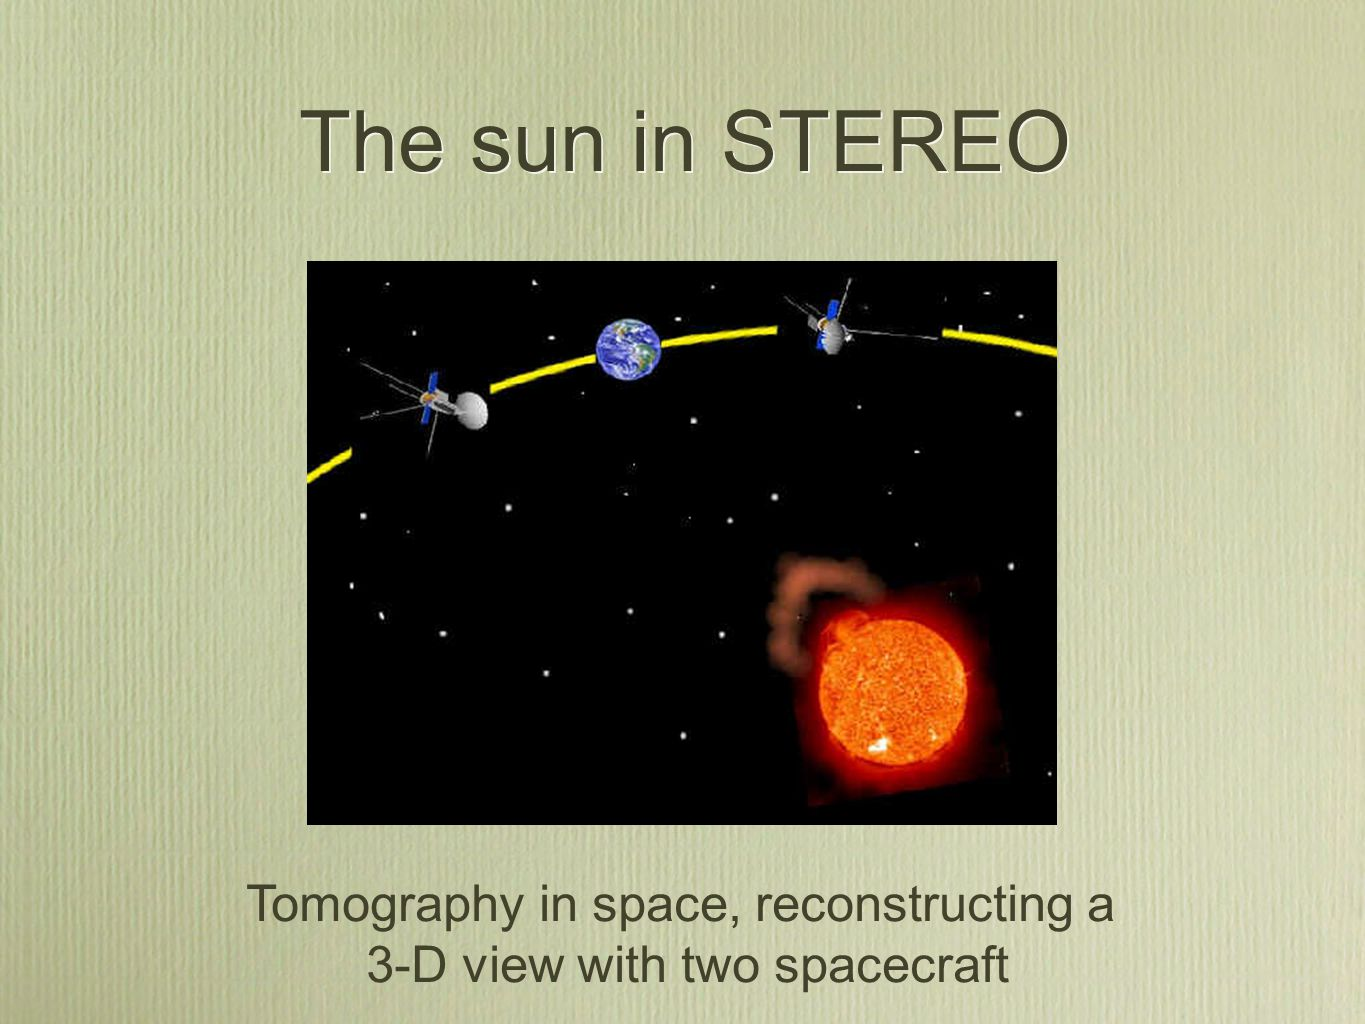 The sun in STEREO Tomography in space, reconstructing a 3-D view with two spacecraft